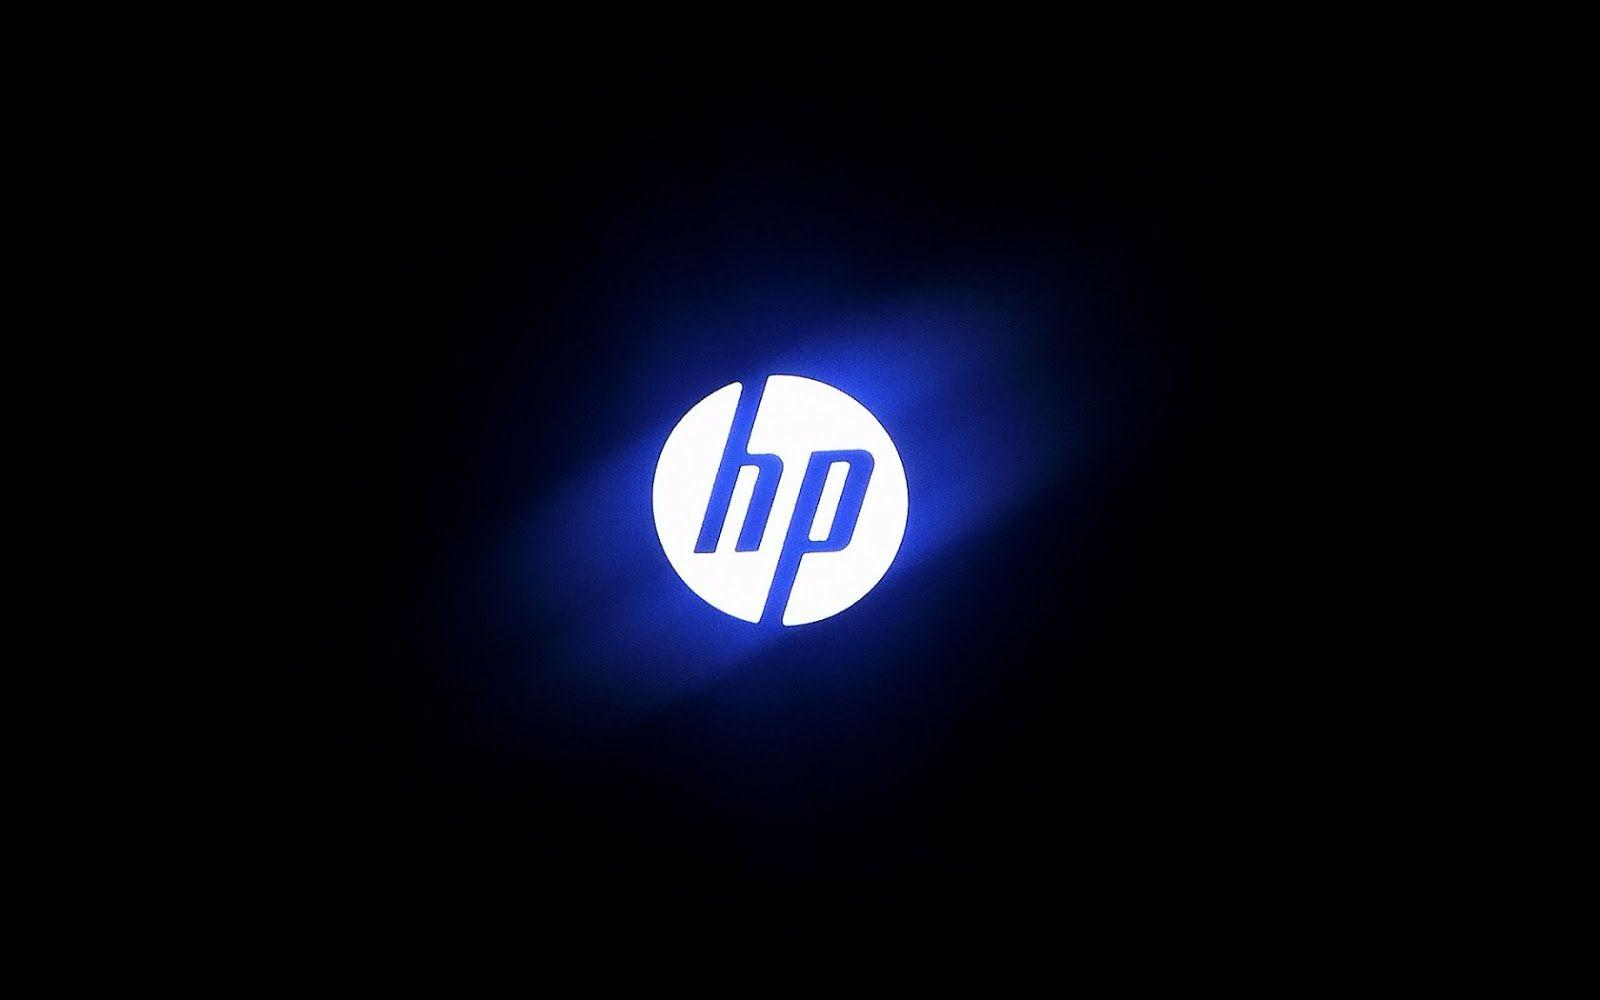 HP Probook Wallpapers   Wallpaper Cave 3D HP Logo Wallpaper   WallpaperSafari